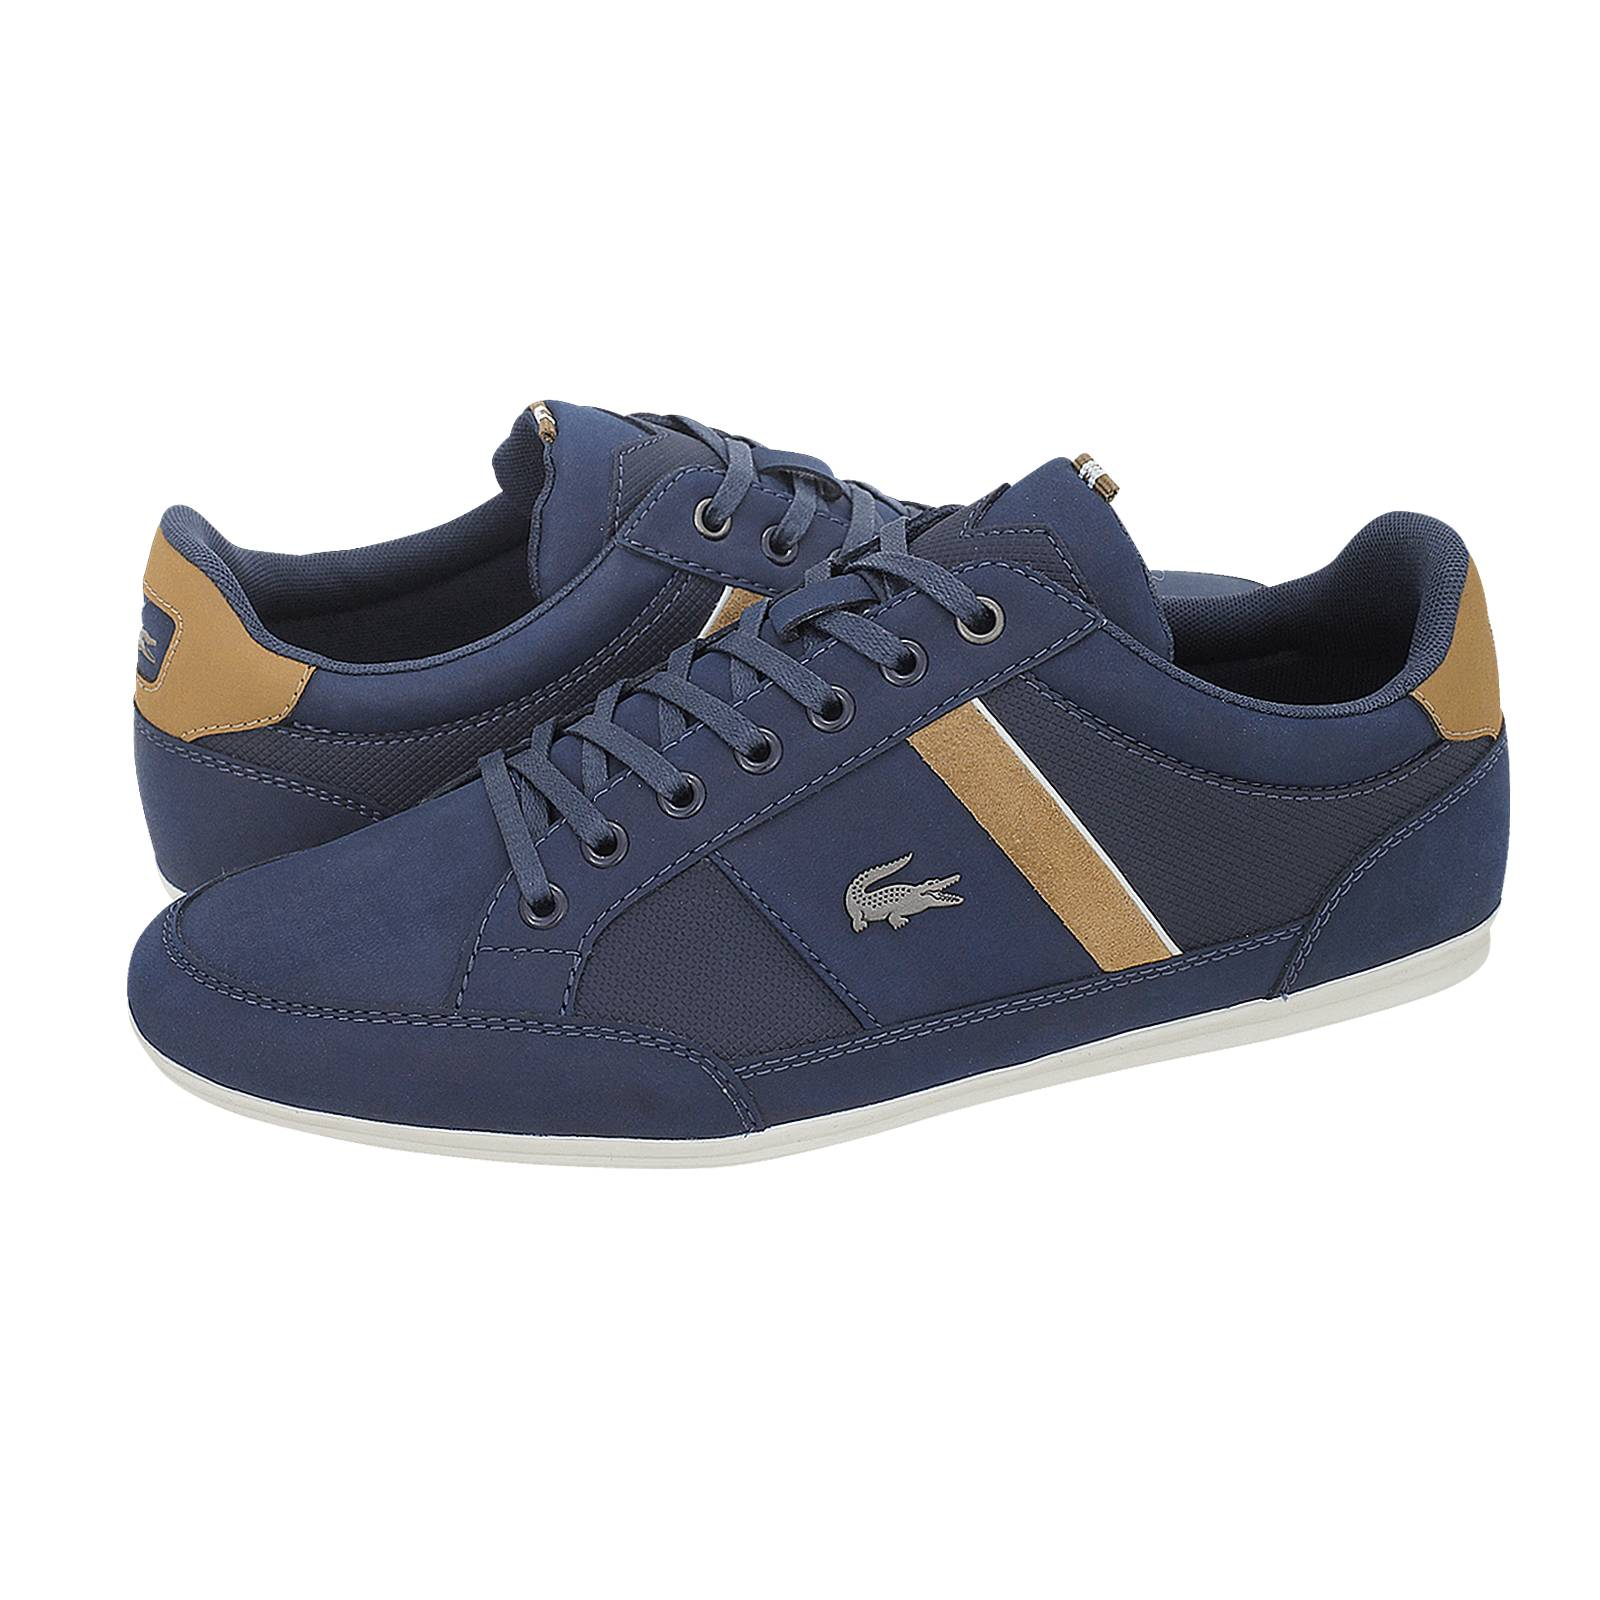 de468c56c Chaymon 119 5 CMA - Lacoste Men s casual shoes made of leather and ...